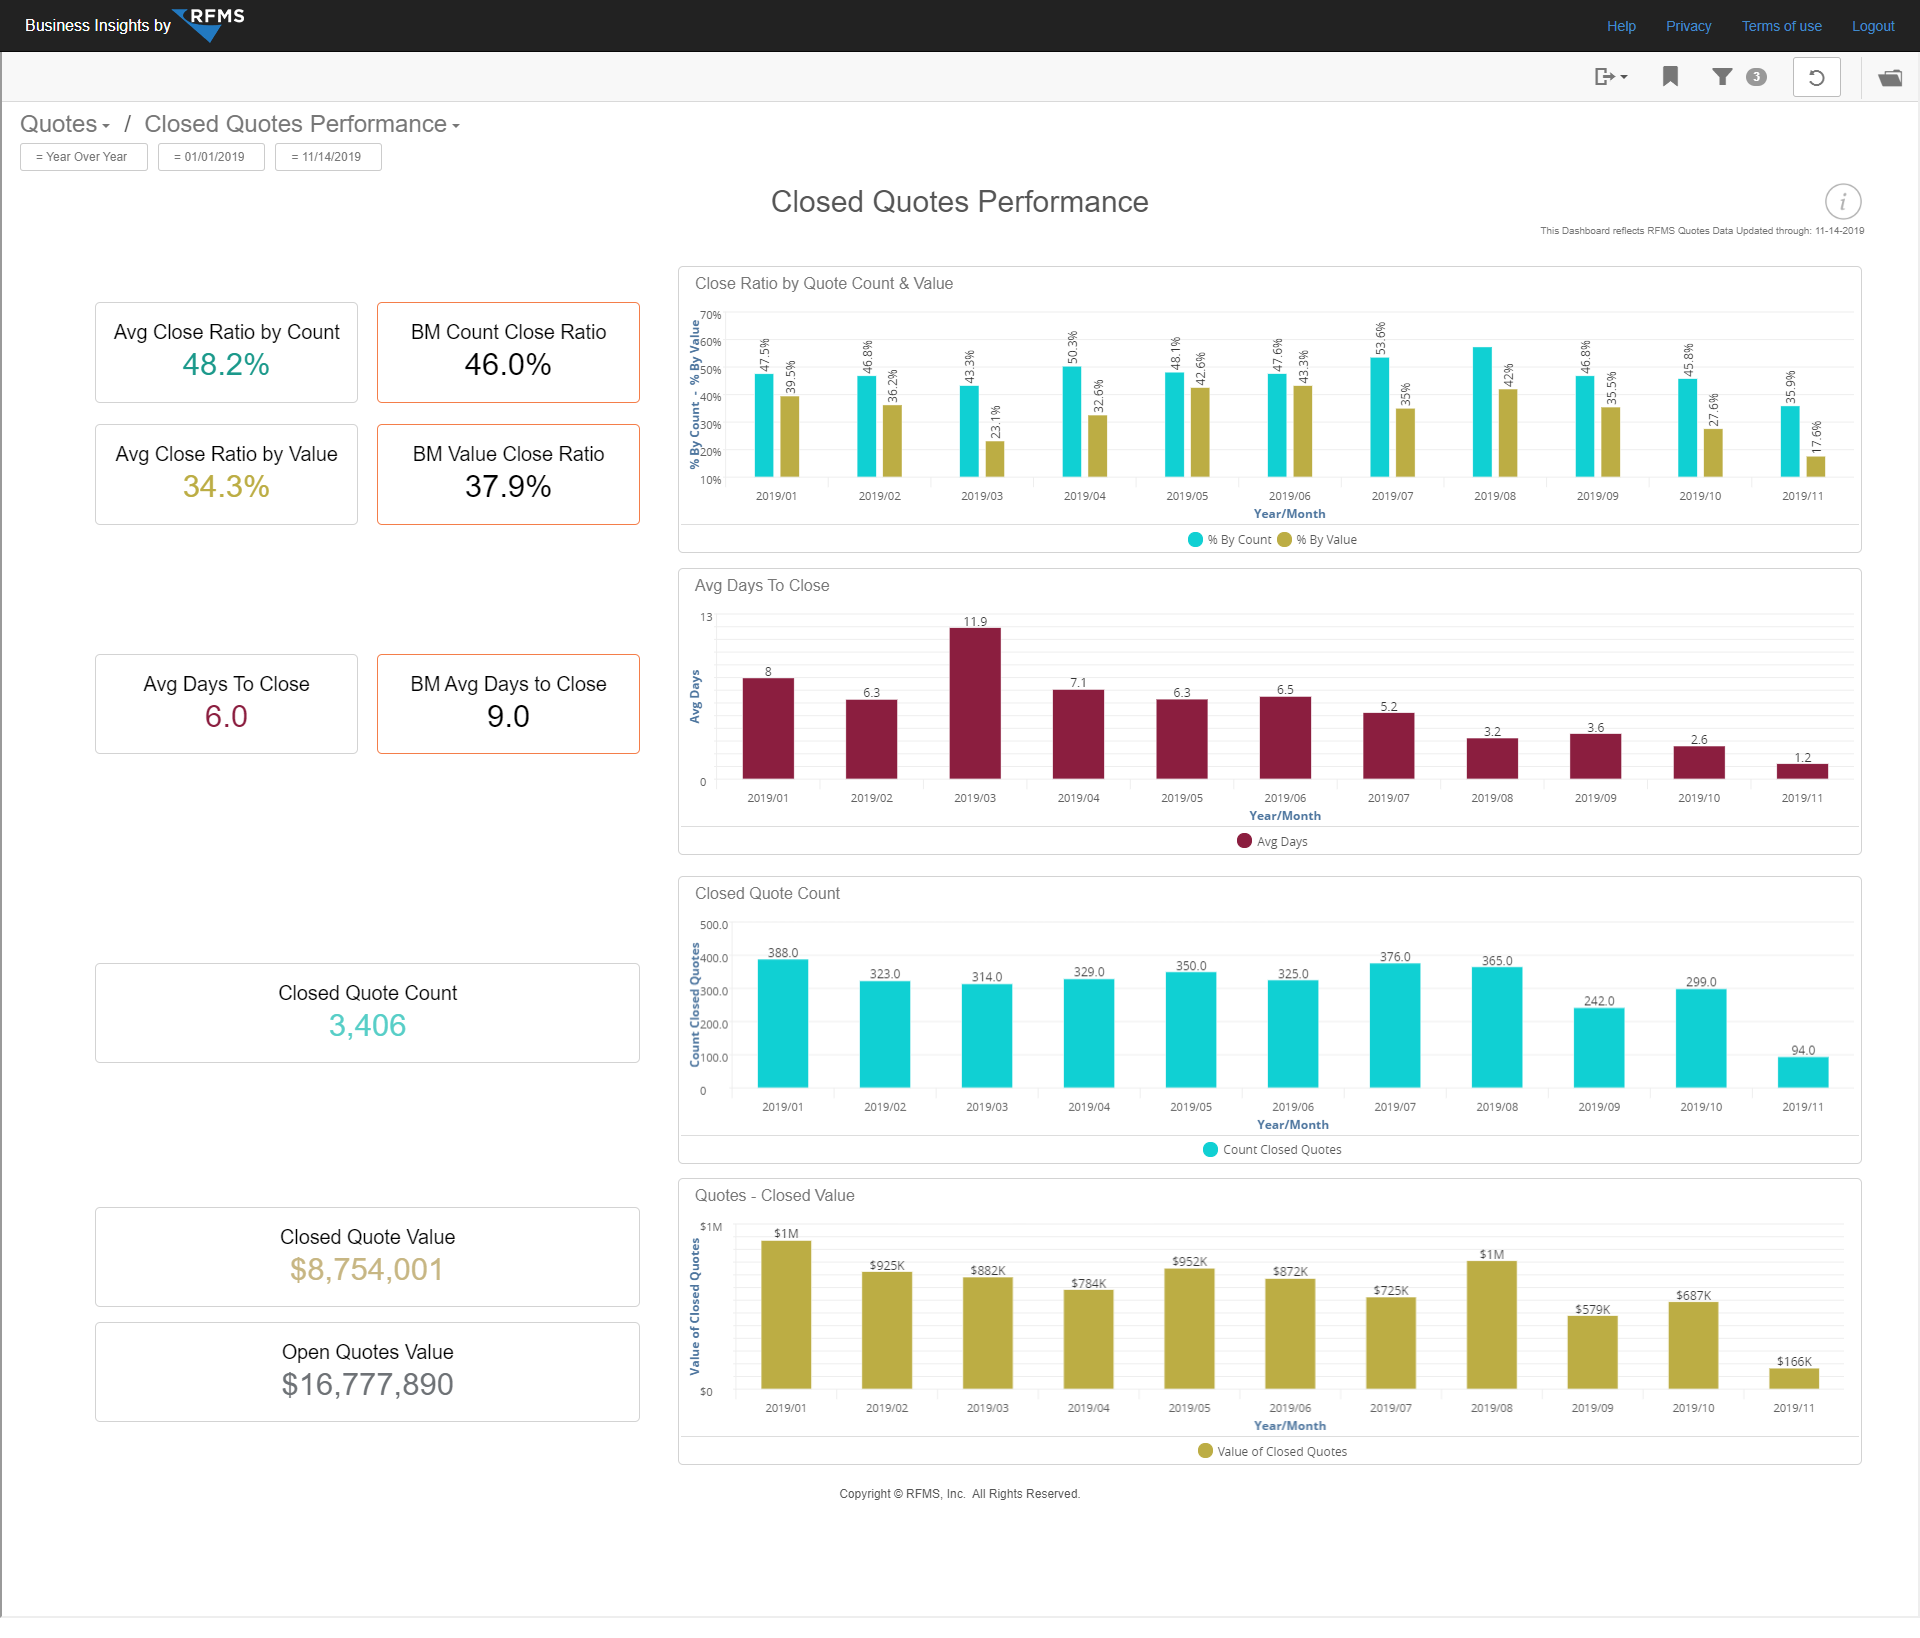 screencapture-bi-rfms-online-Dashboard-2019-11-15-15_47_36.png